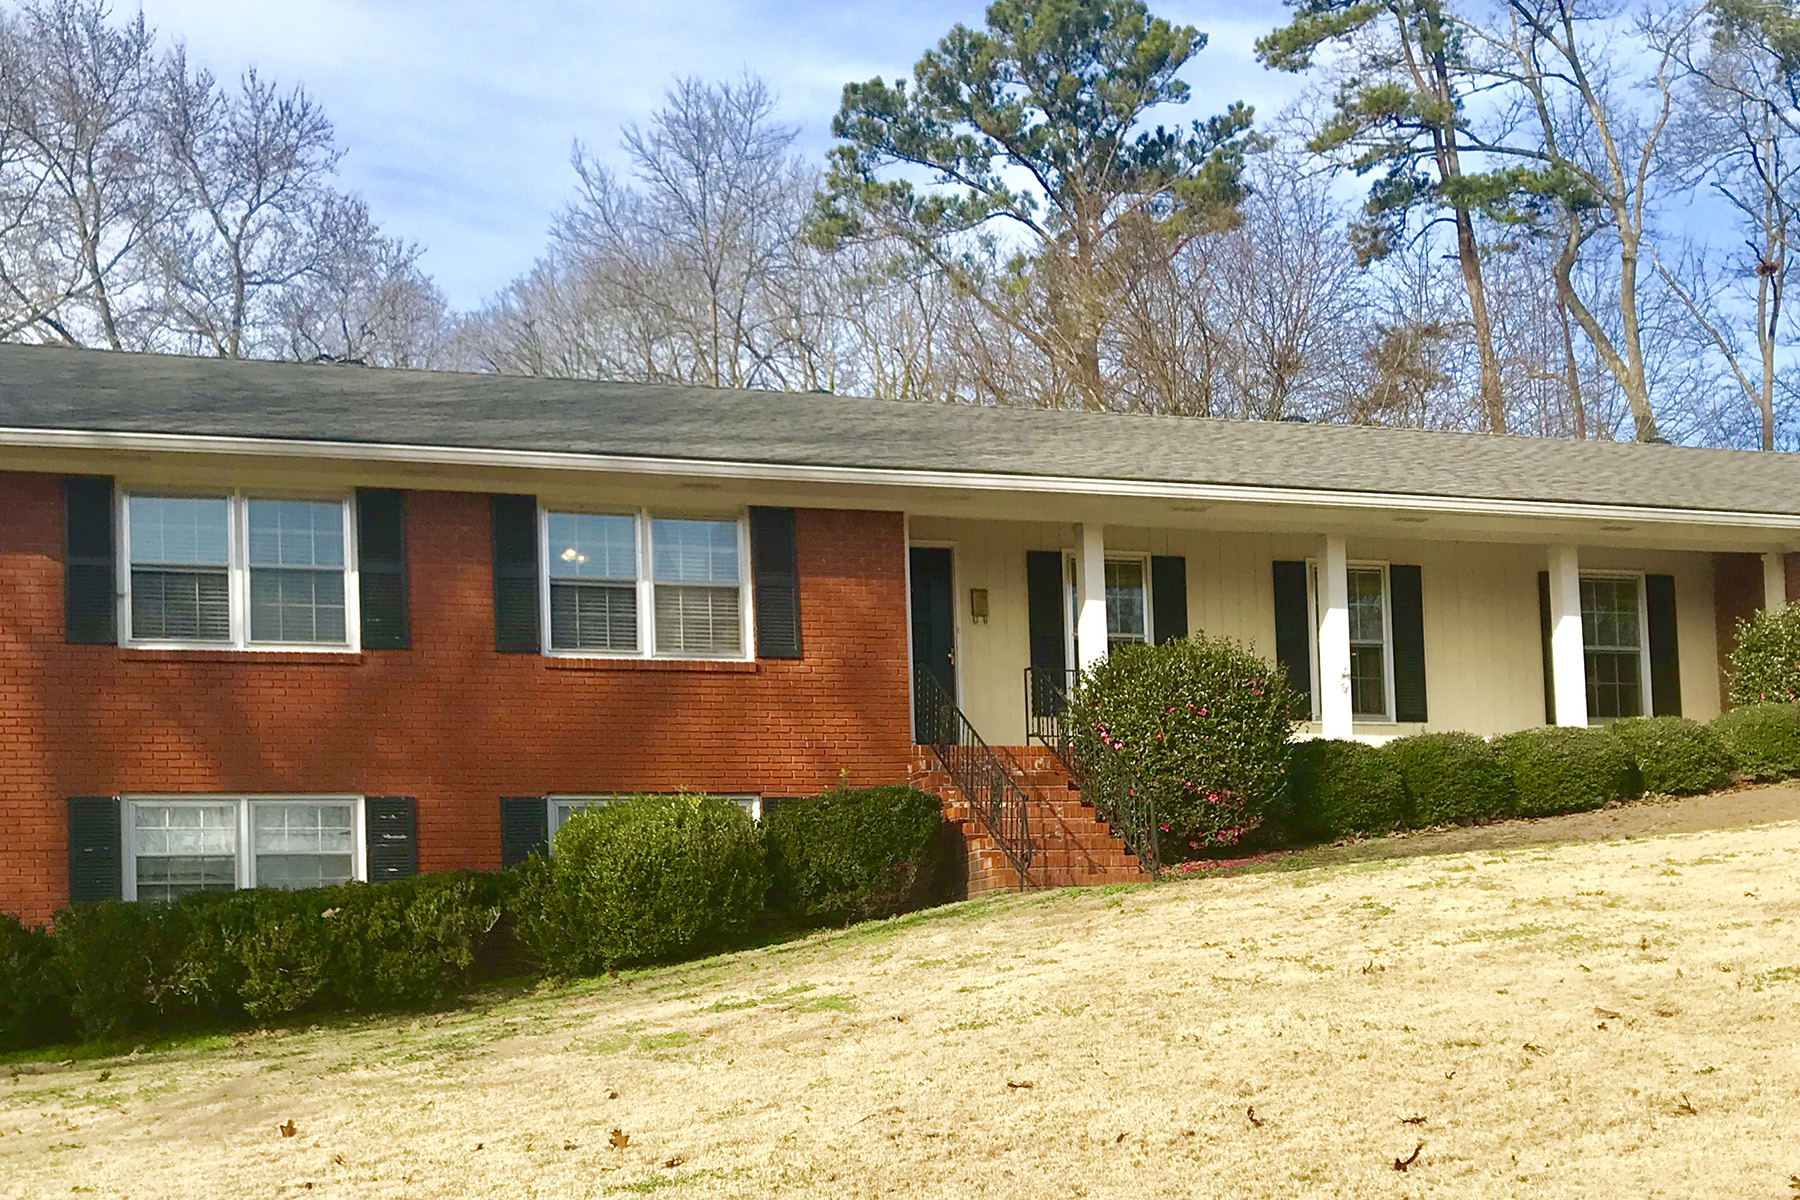 Single Family Home for Rent at Beautiful Brick Ranch in East Cobb 3241 Hickory Crest Drive Marietta, Georgia 30064 United States